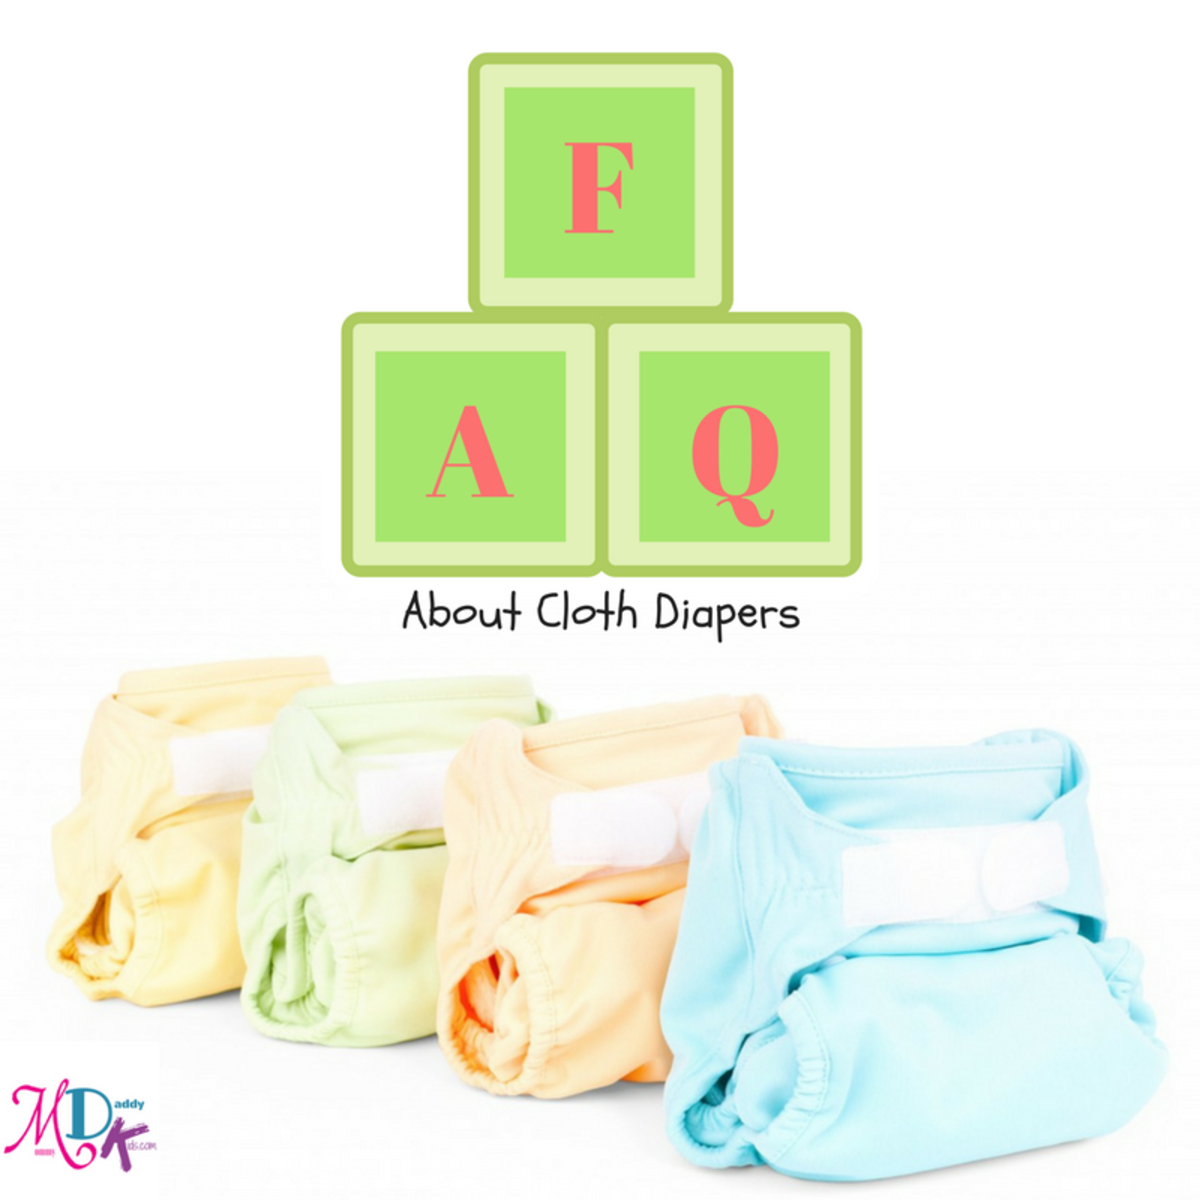 Cloth Diapers 101 - How to Use, How to Clean, and More!